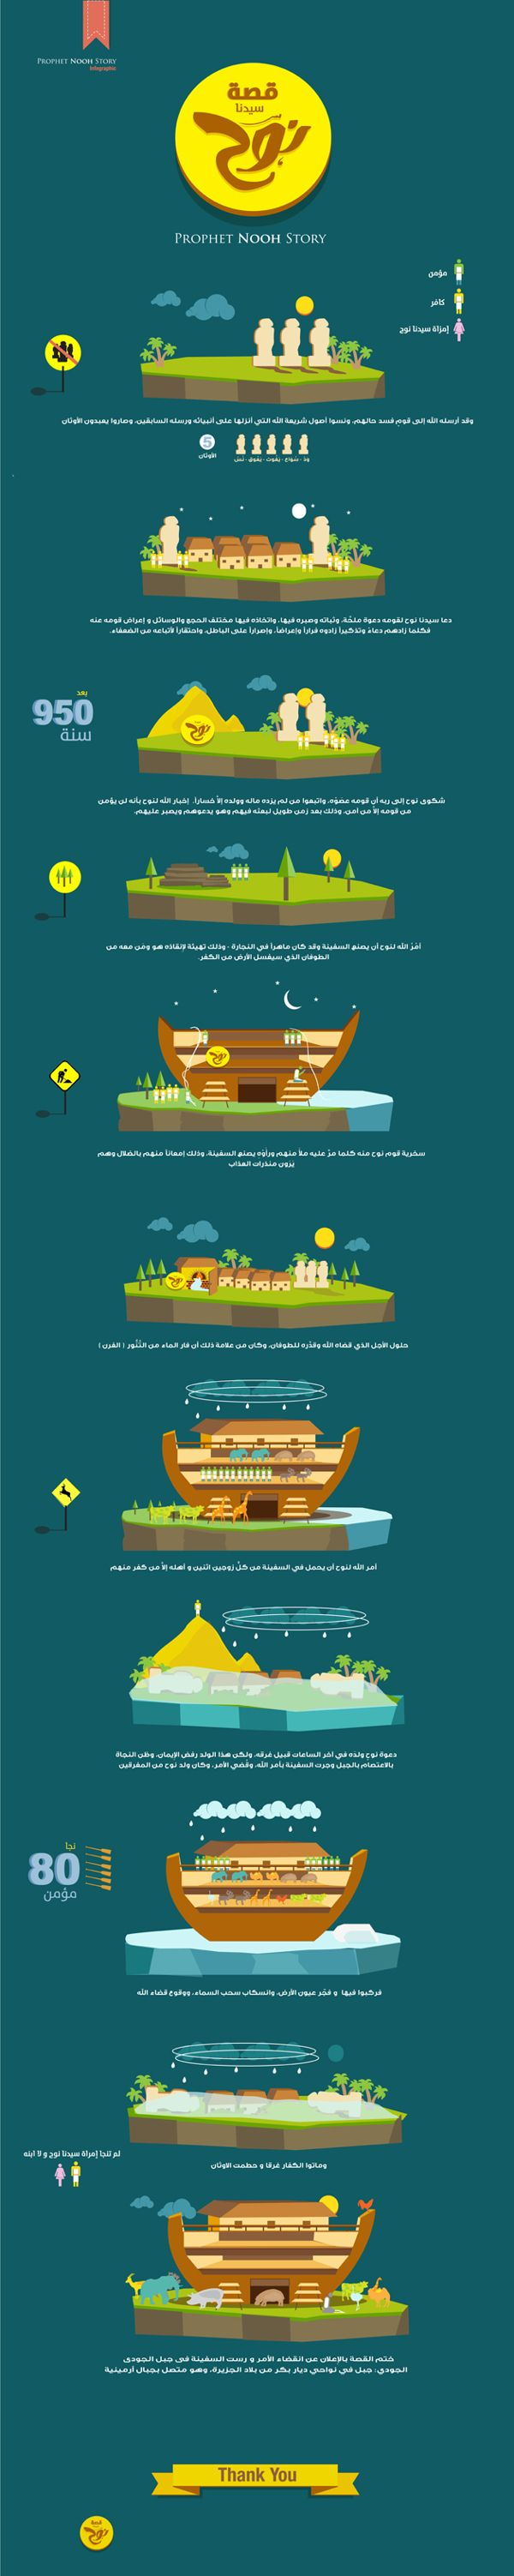 Story of Prophet Nuh Infographic by Mohamed Meleas, via Behance